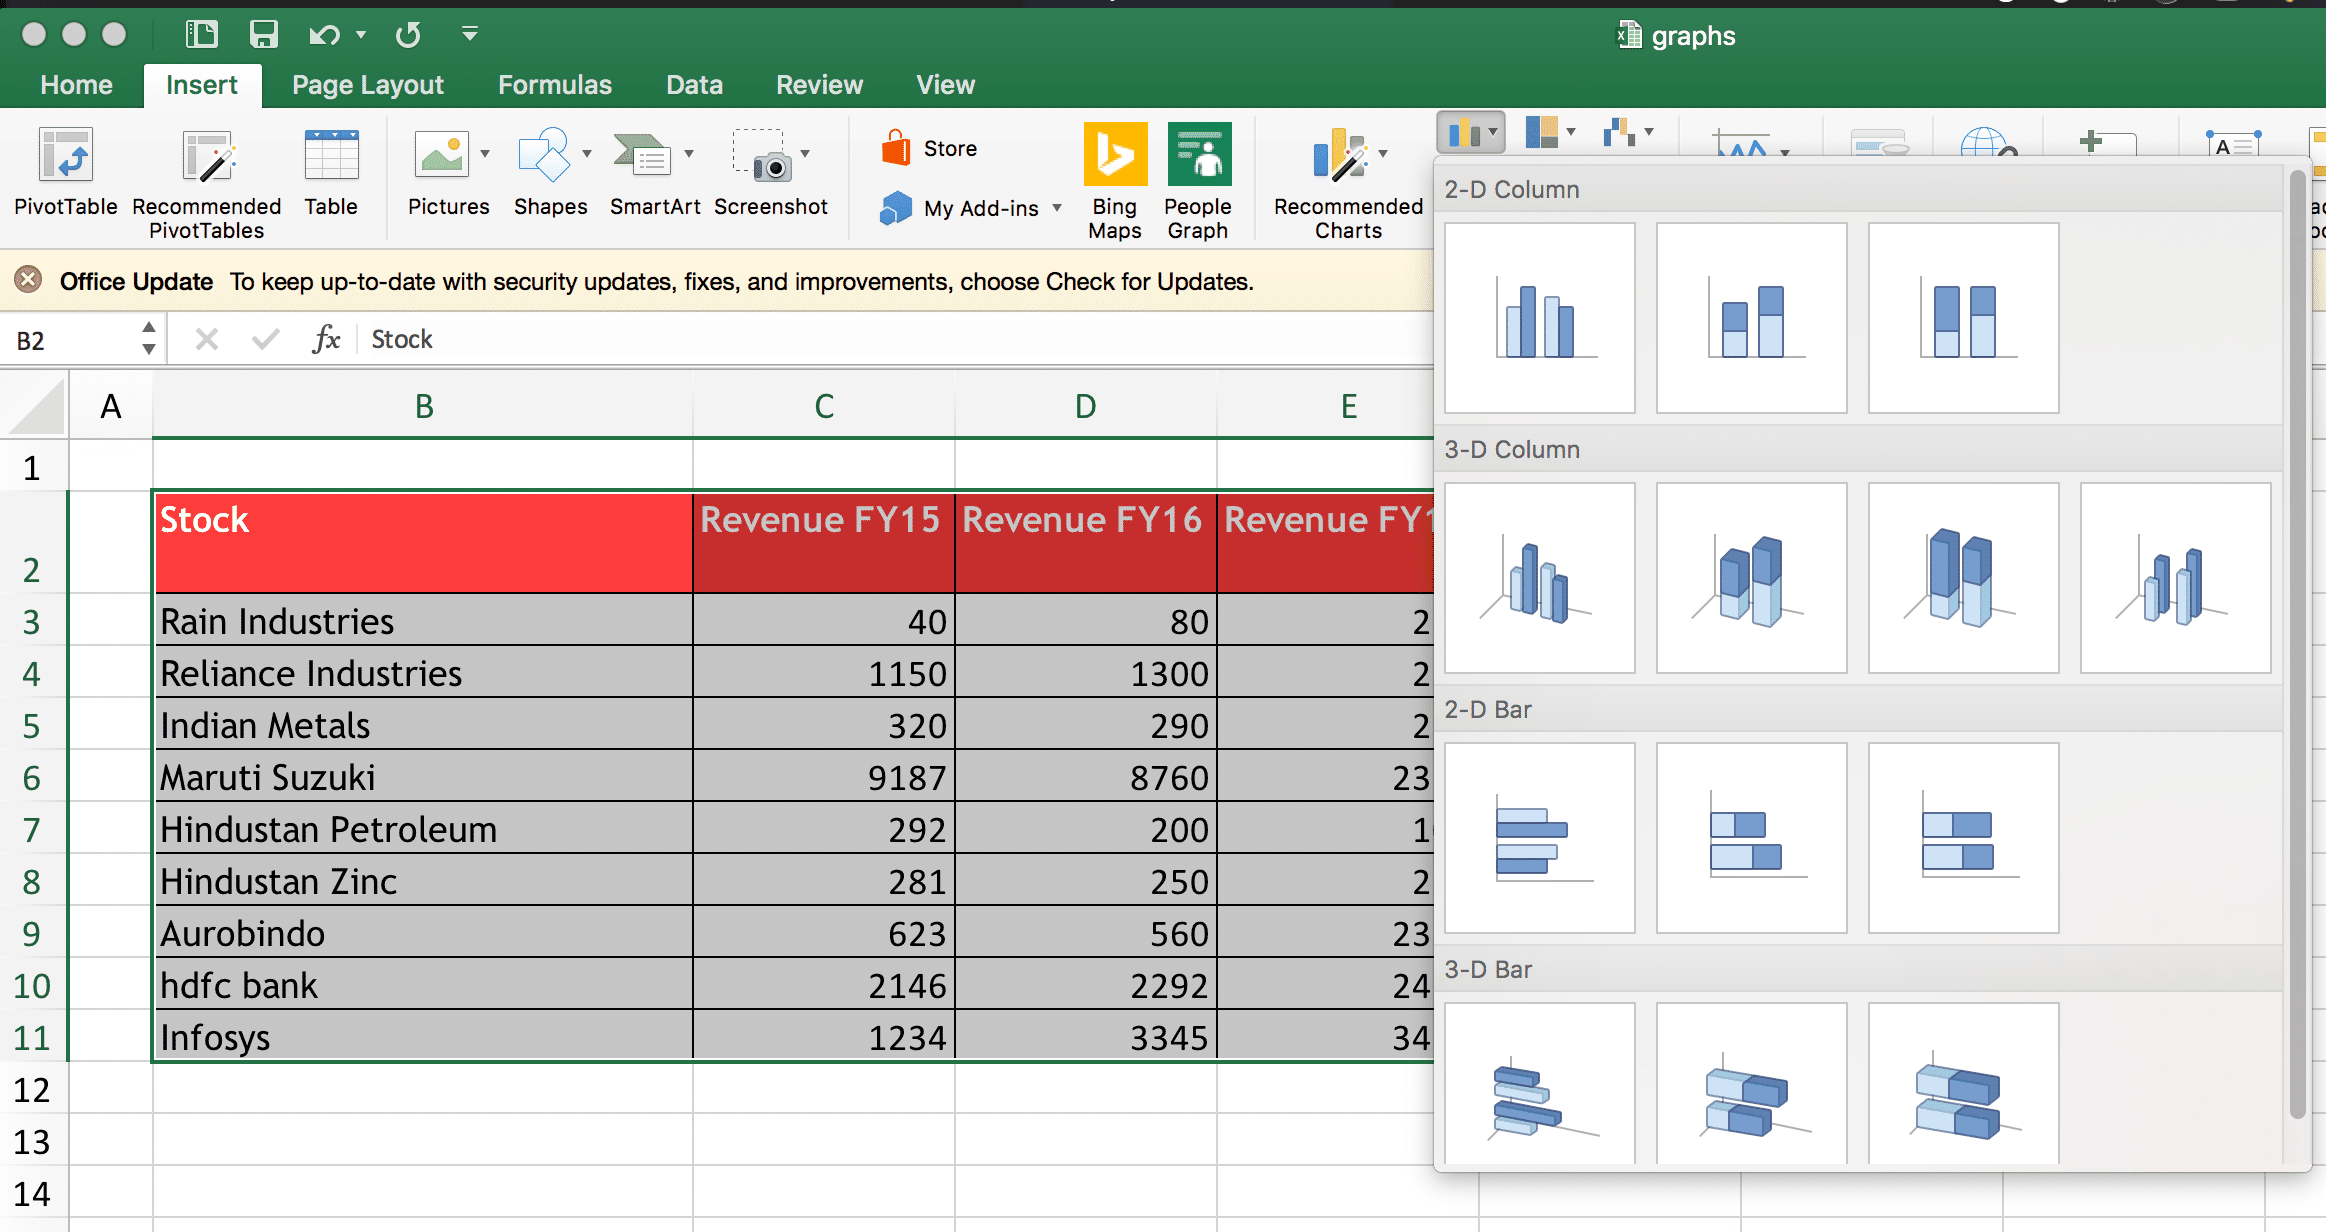 A step-by-step instruction on how to make a chart in Excel